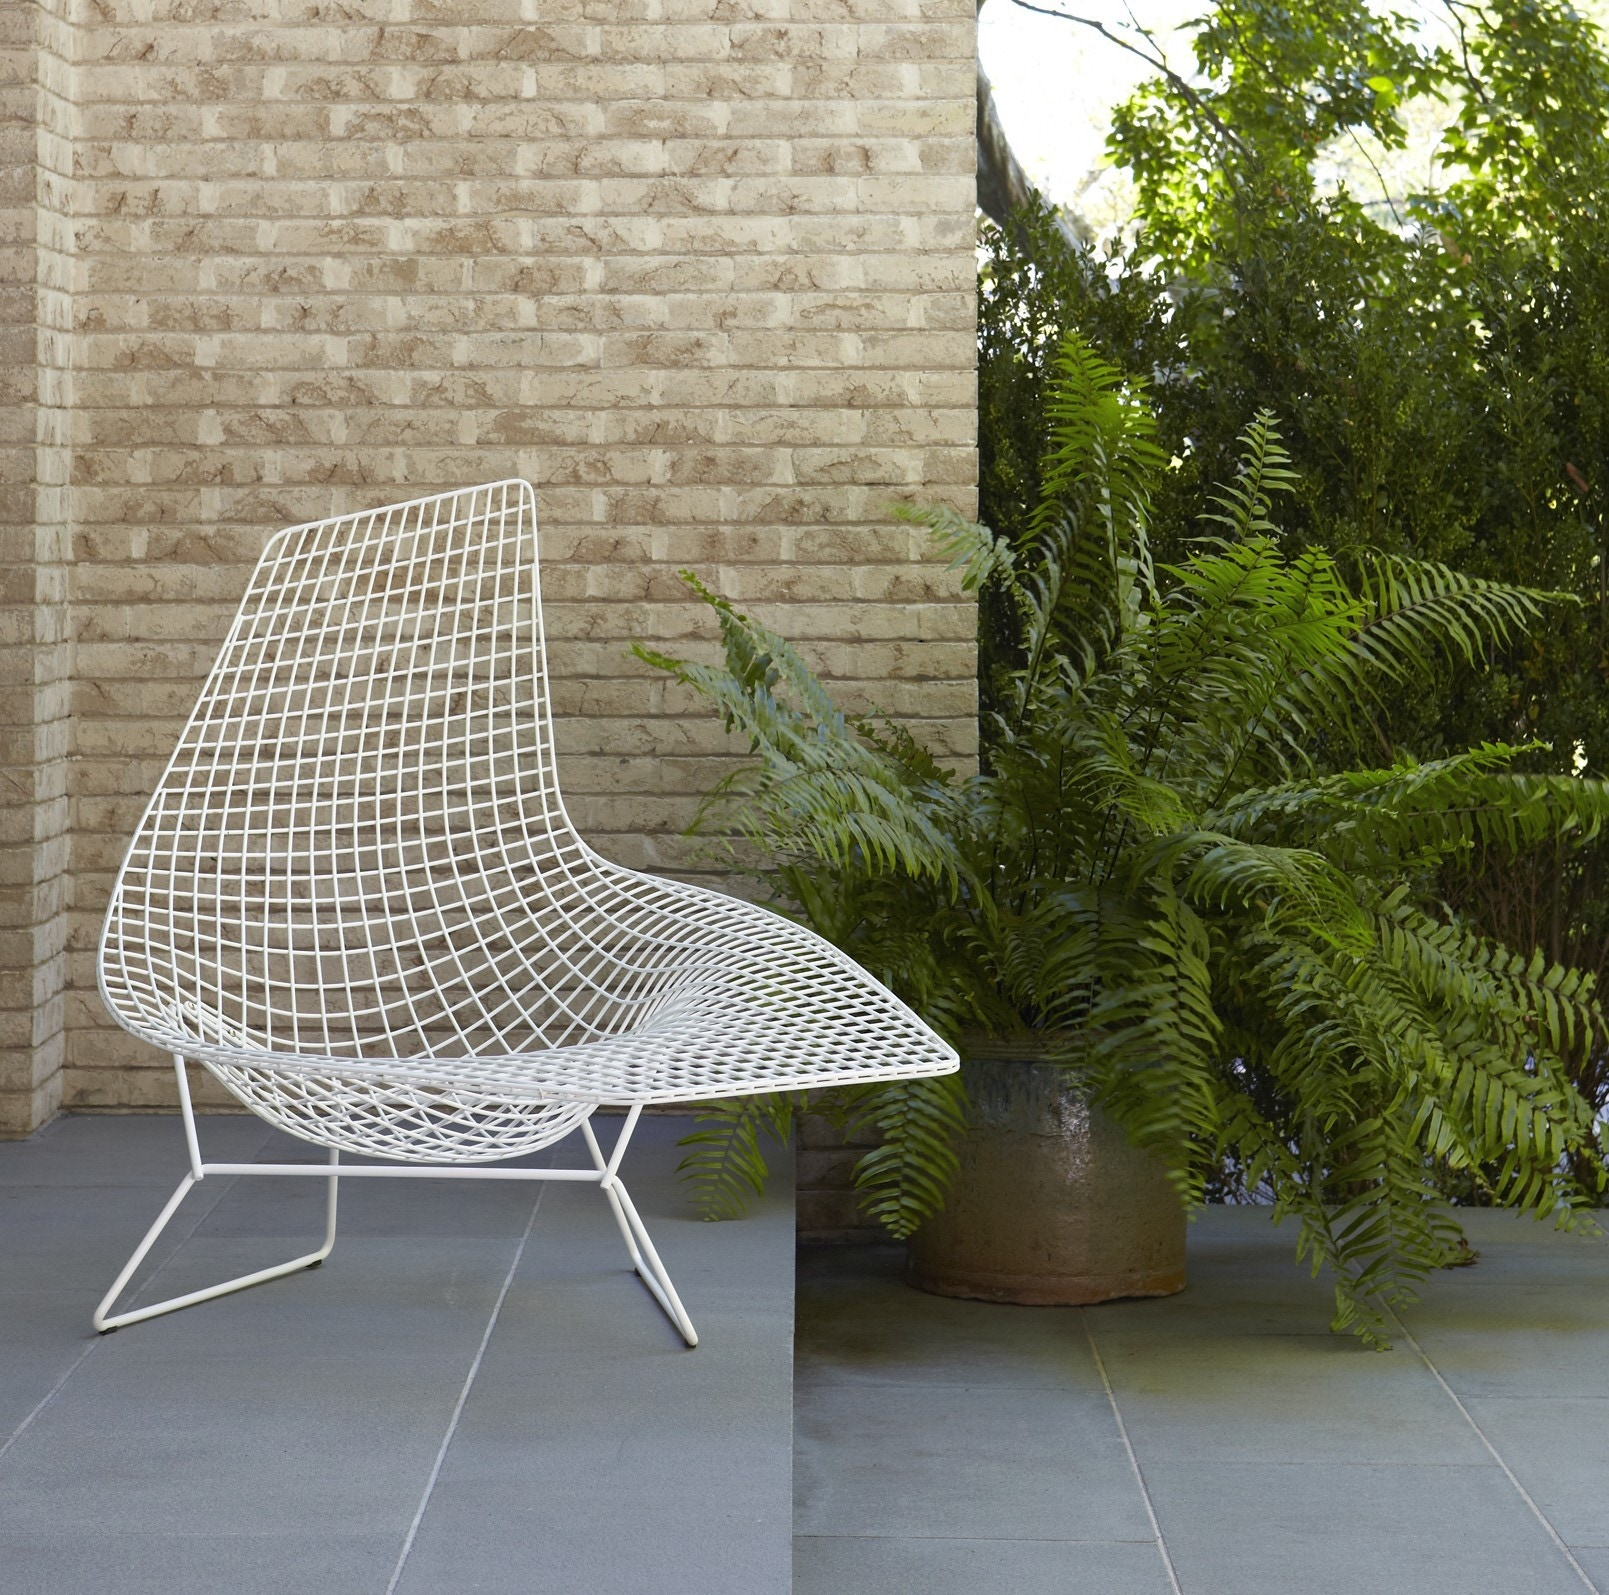 Knoll harry bertoia asymmetric chaise outdoor modern planet for Chaise knoll bertoia